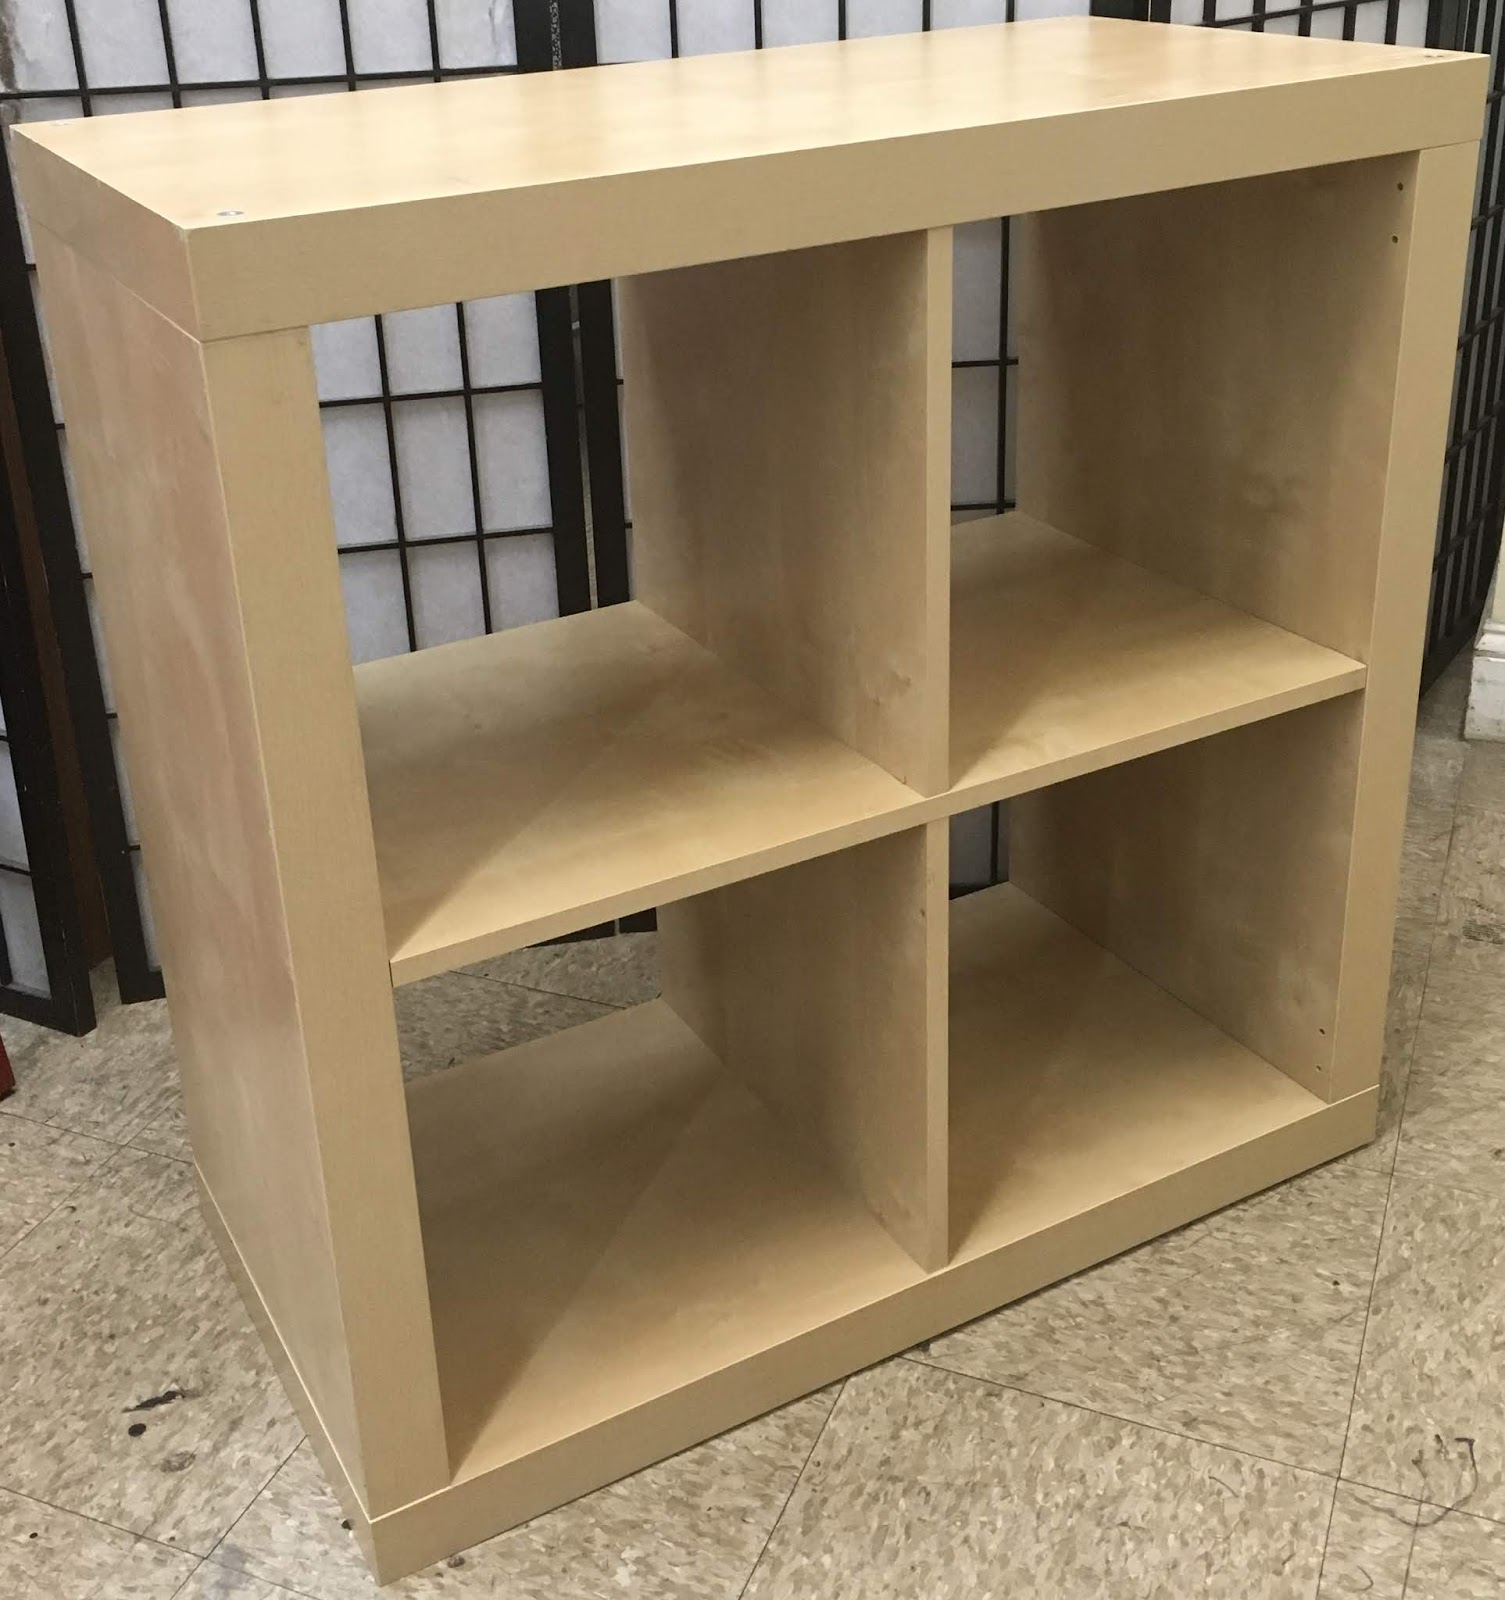 Uhuru Furniture & Collectibles: Pair Of 2 X 2 Cubby Shelves